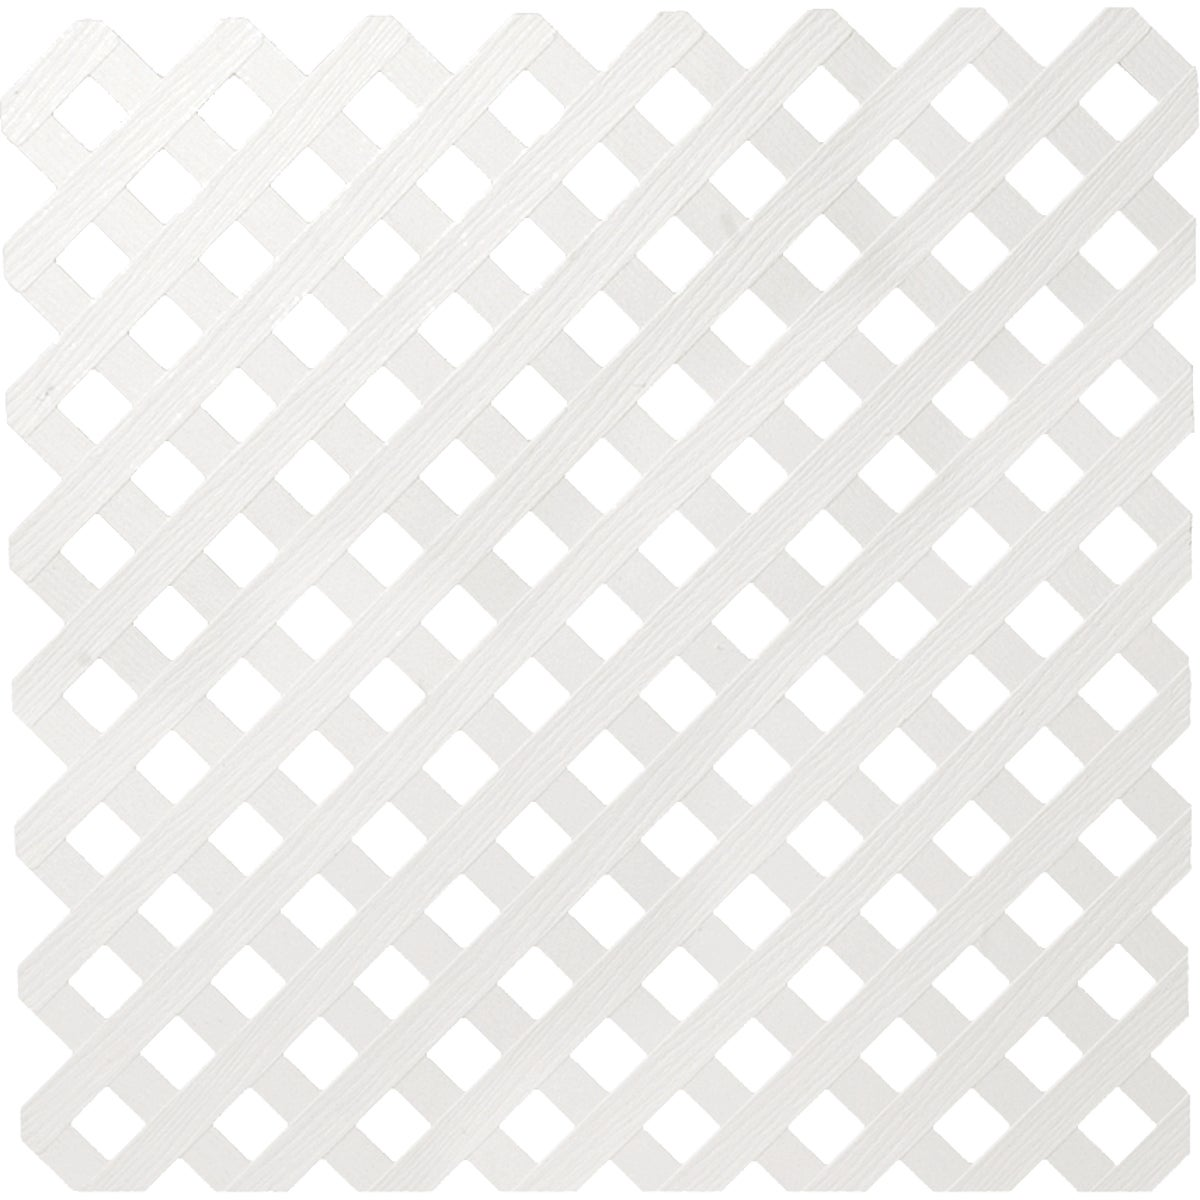 4X8 WHT PRIVACY LATTICE - 79938 by Ufpi   Plstc Lattice